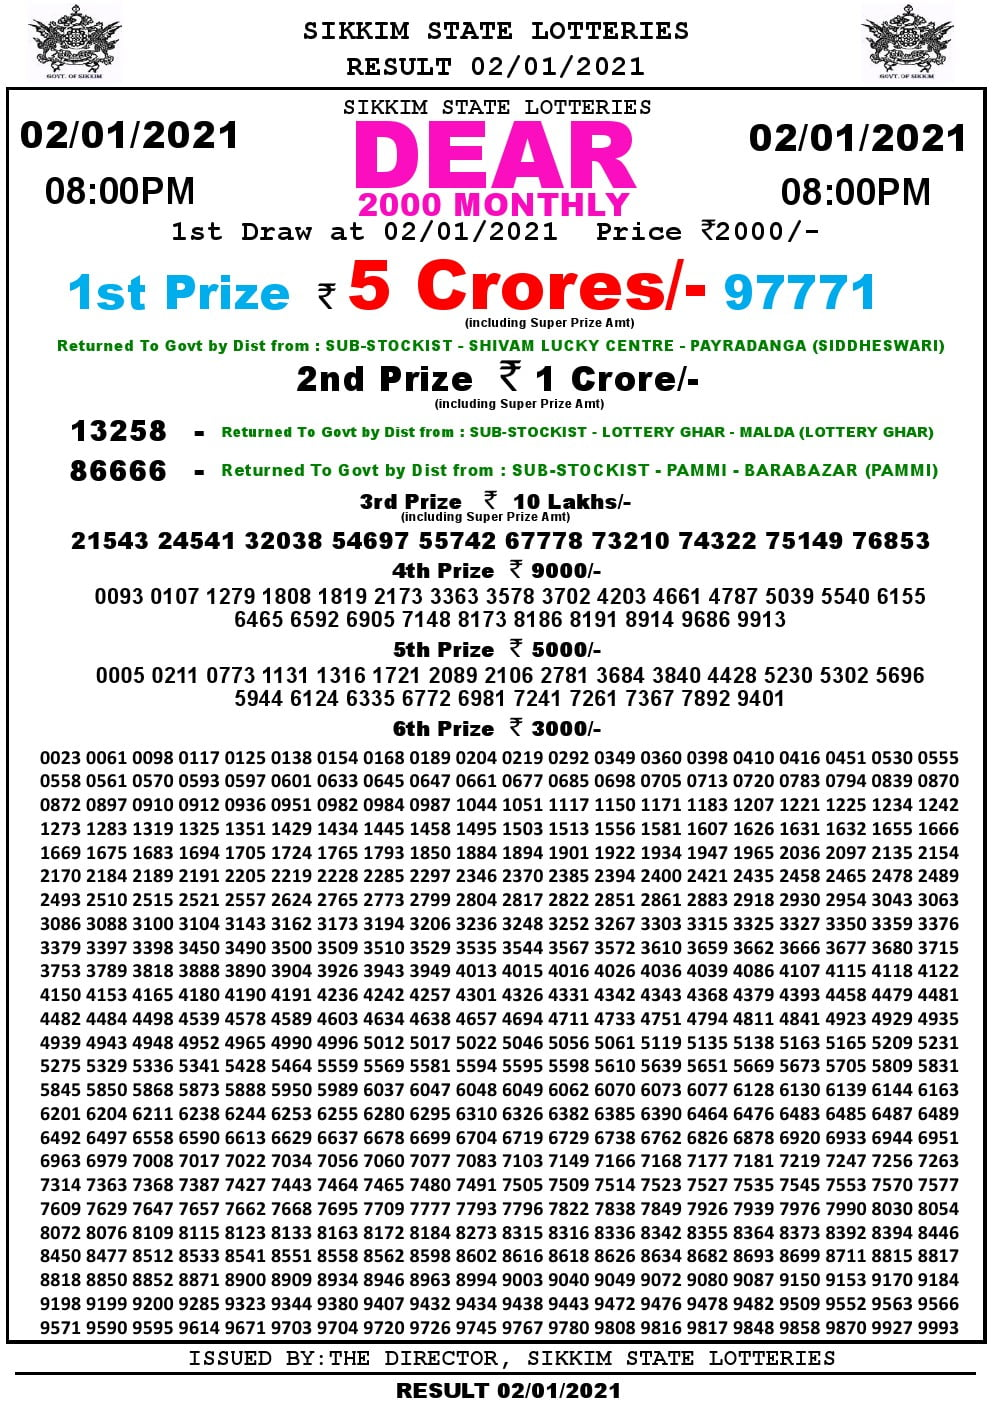 Sikkim State Lottery Results Today 8pm dear 2000 monthly lottery result pdf